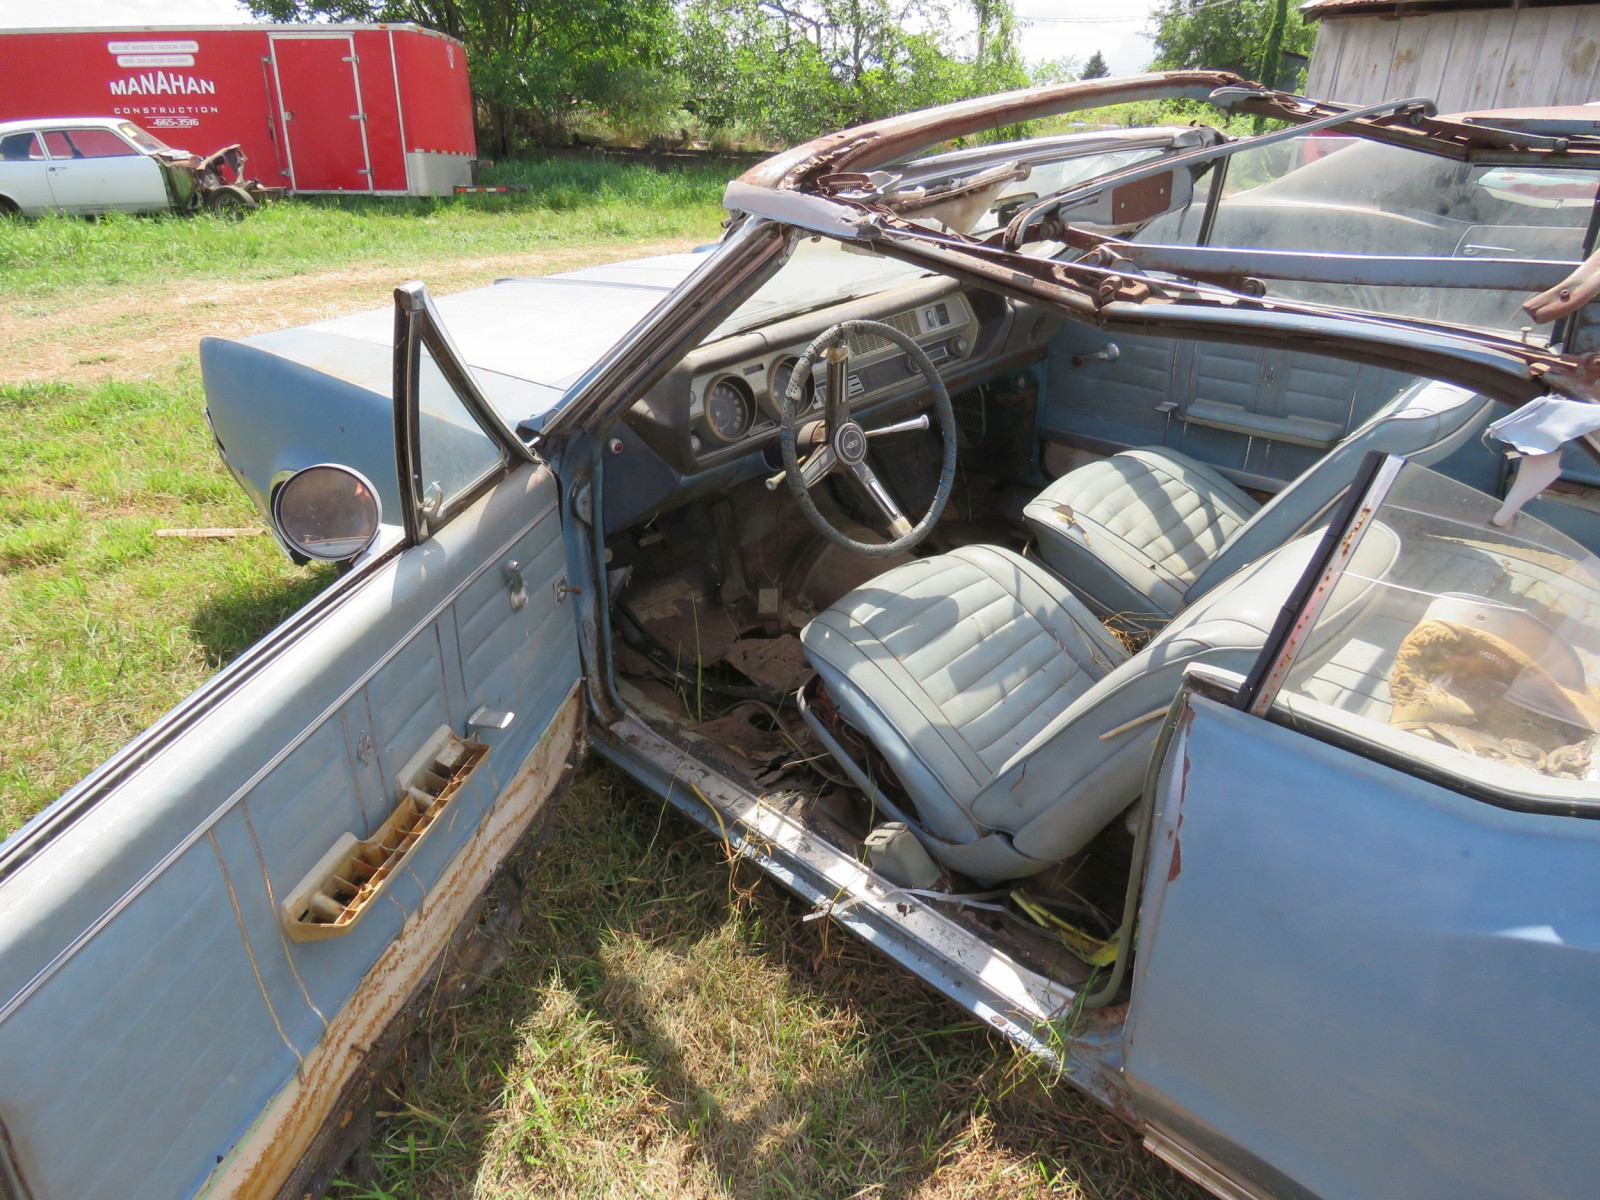 1967 Oldsmobile Cutlas Convertible Parts Car - Image 8